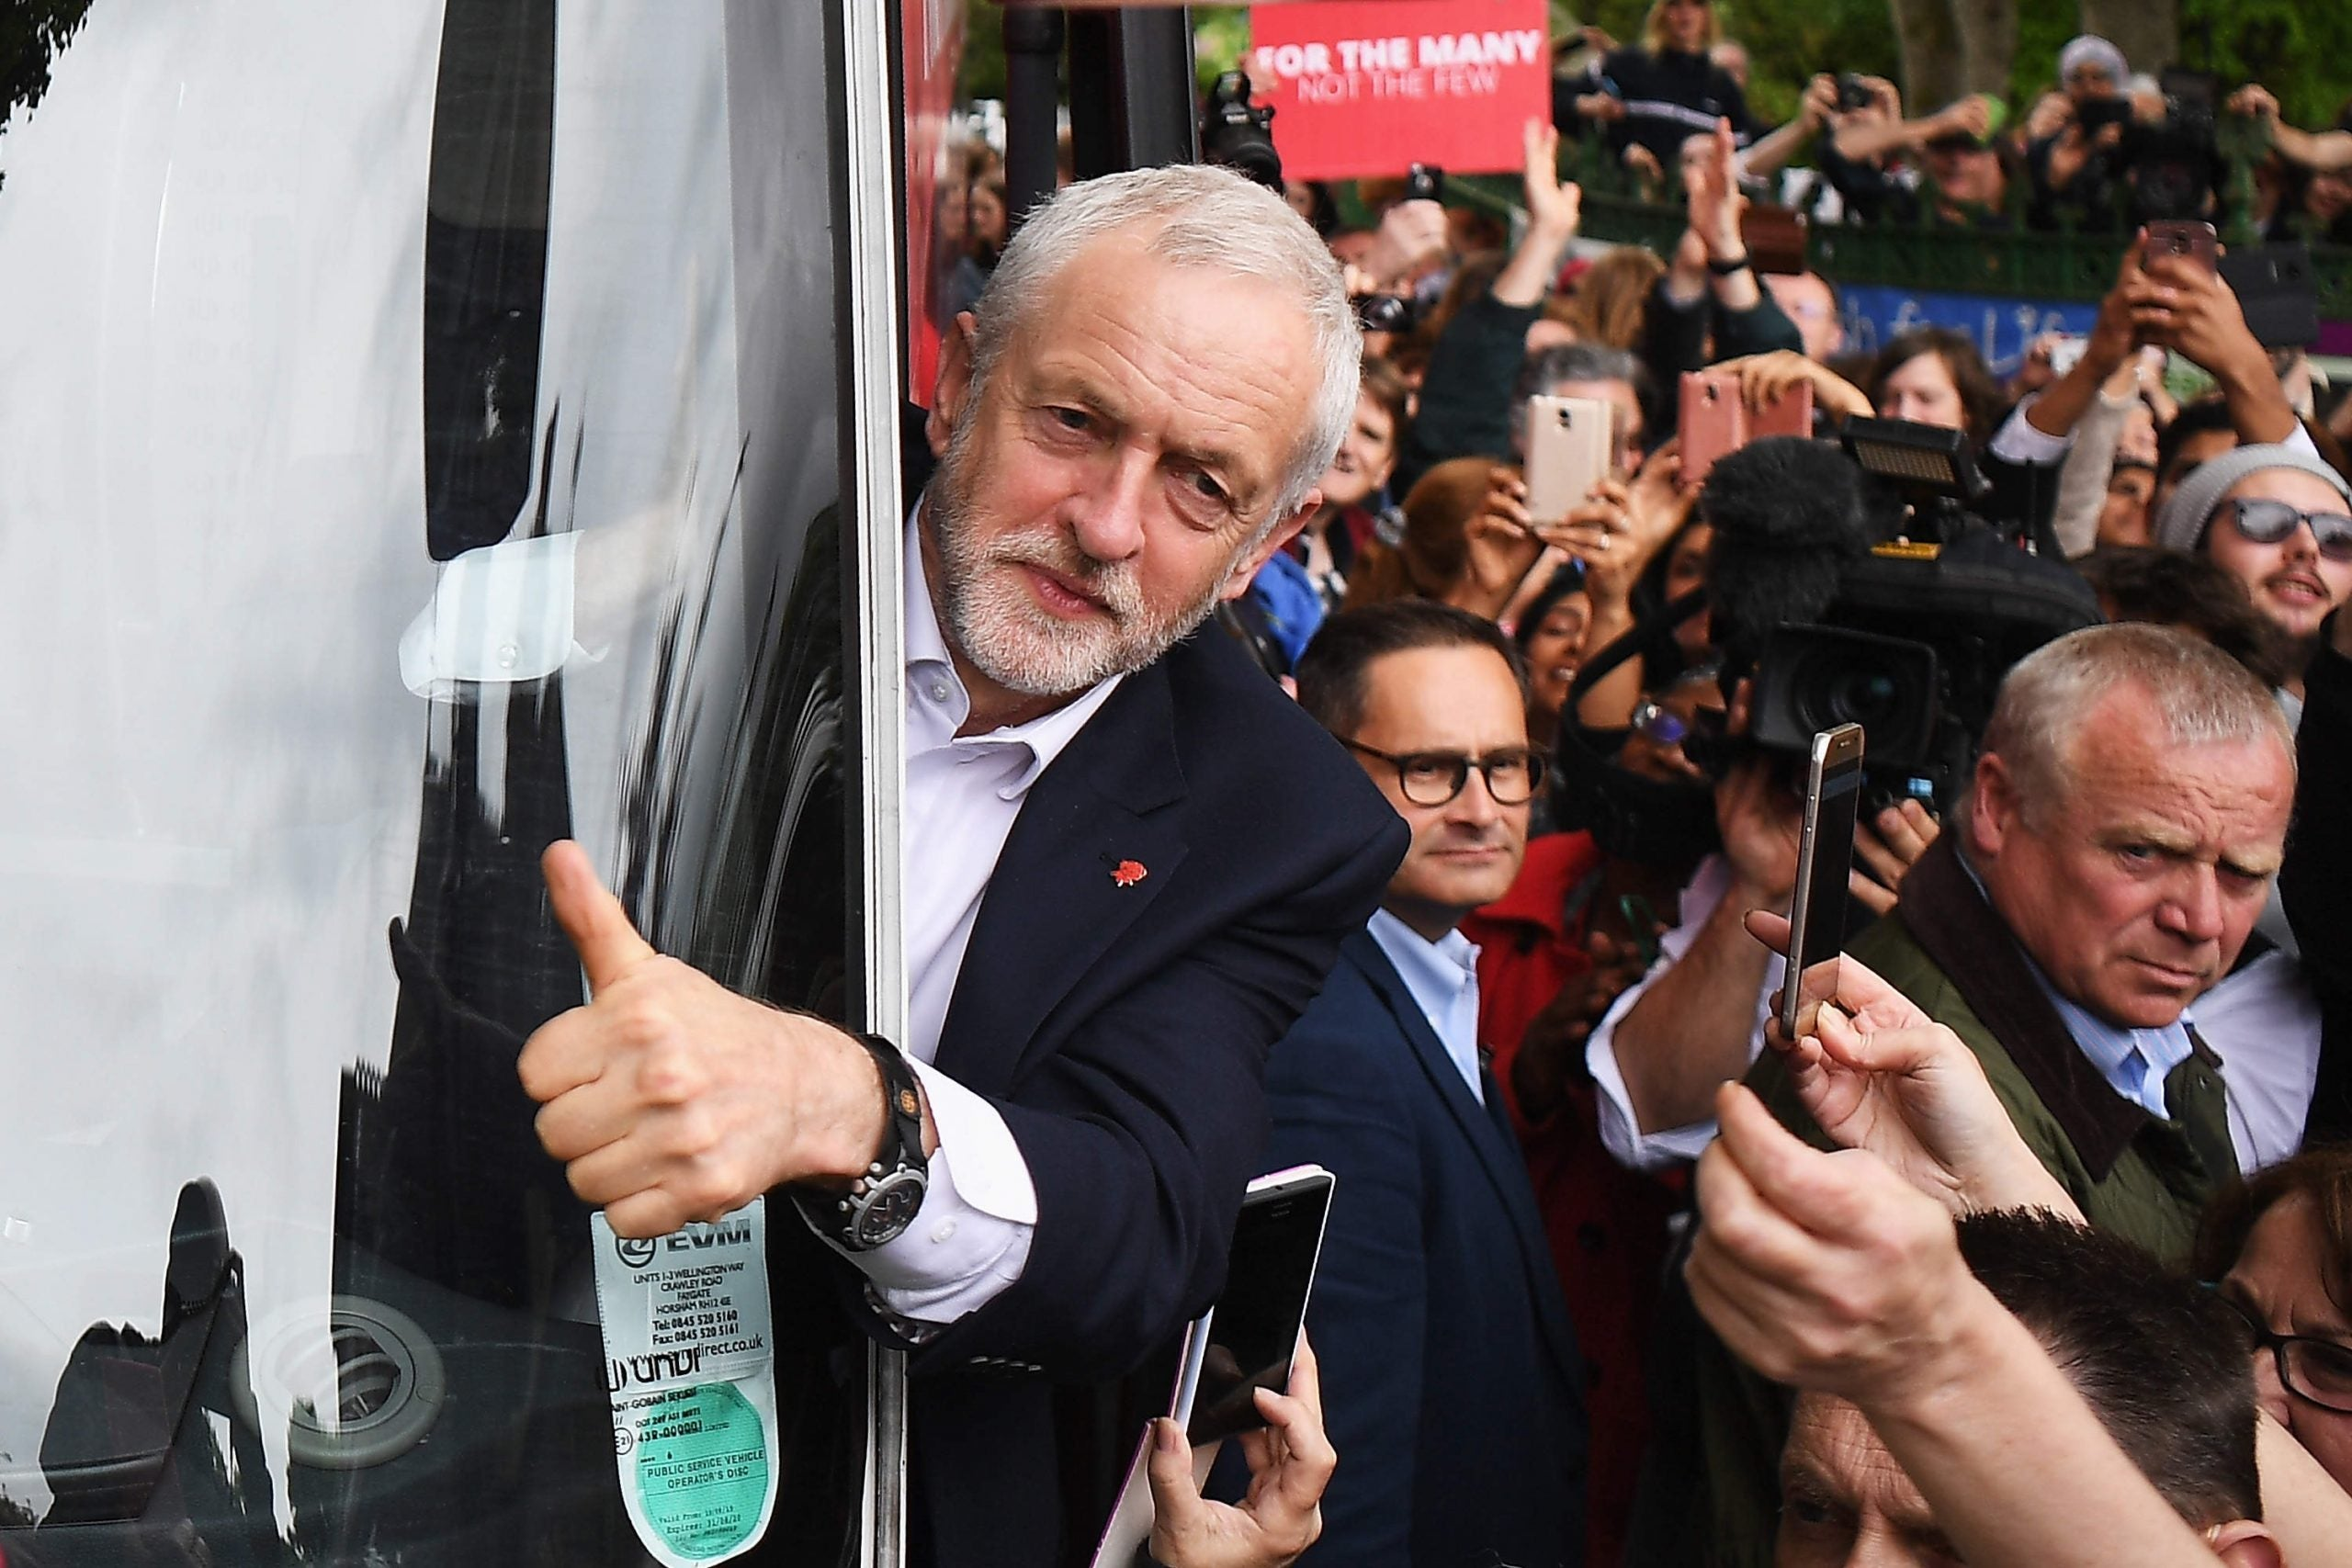 What matters for Labour is not the general election but what happens next